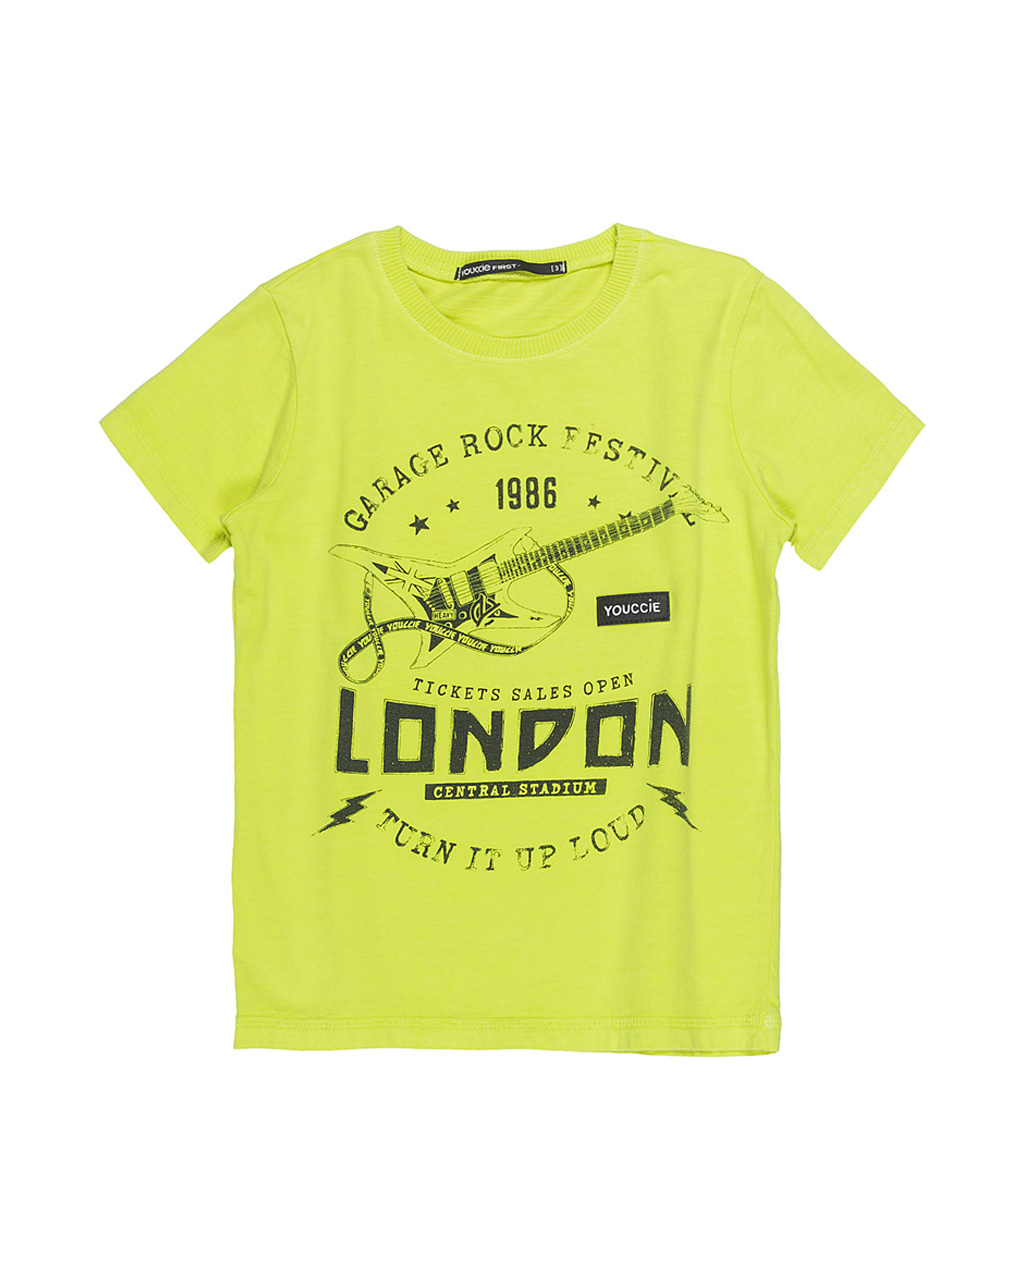 T-Shirt First LonDon Lavada Neon Youccie